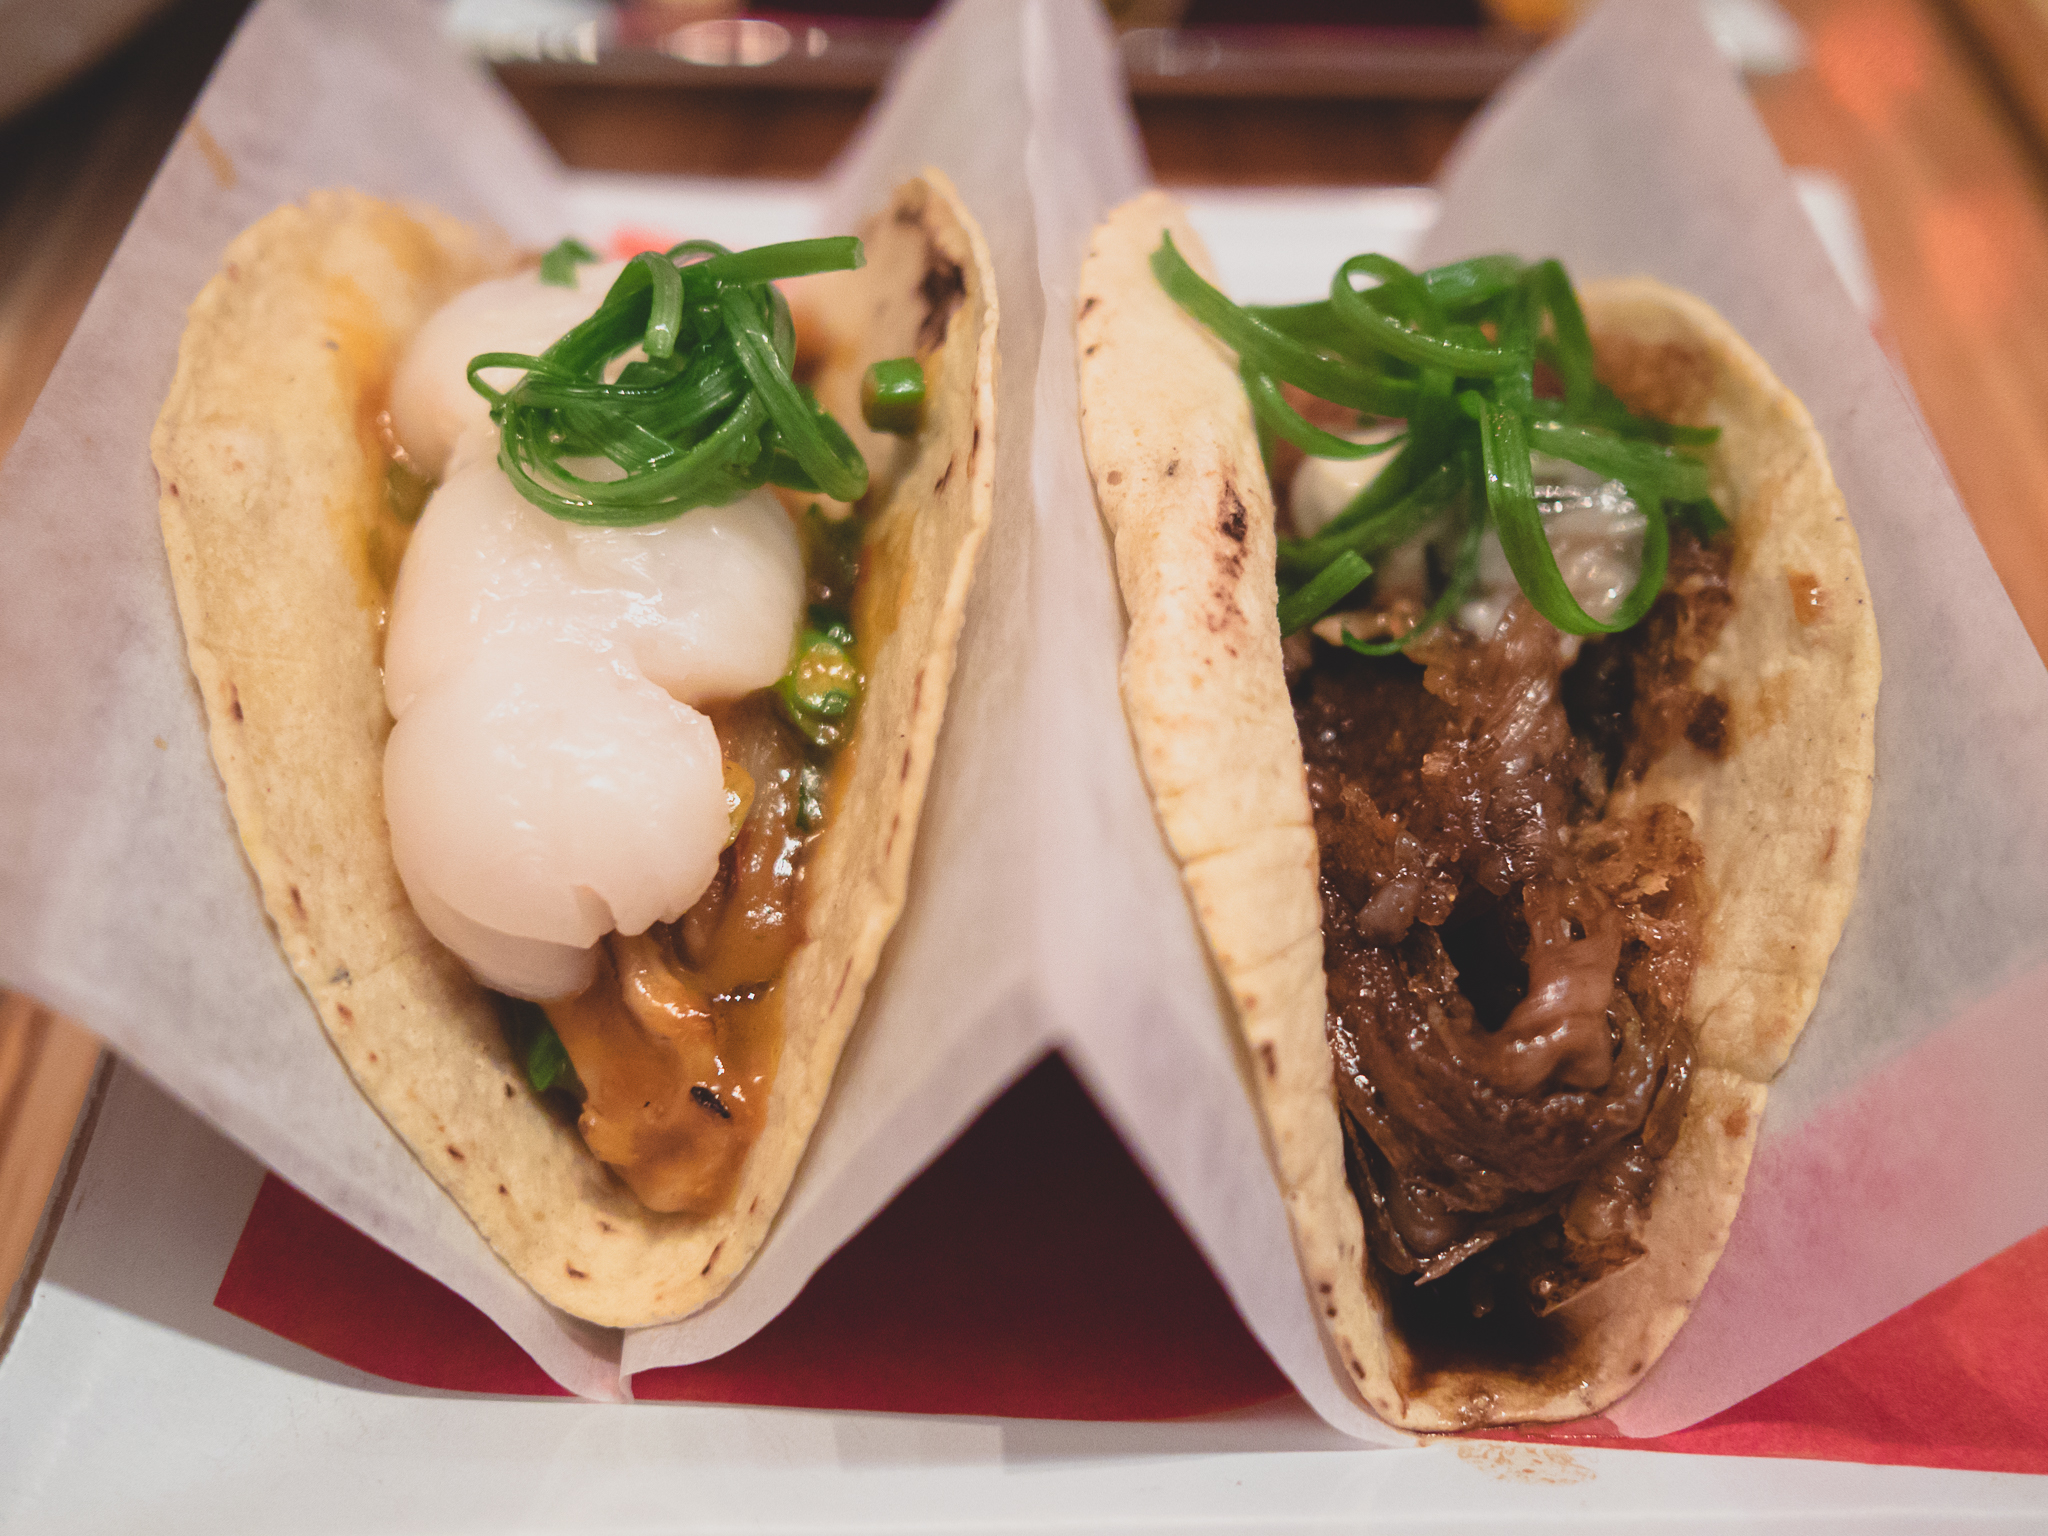 tacos  silencio  (braised duck tongue, fresh lychee) and  viva china  (beef tenton, kumamoto oysters).